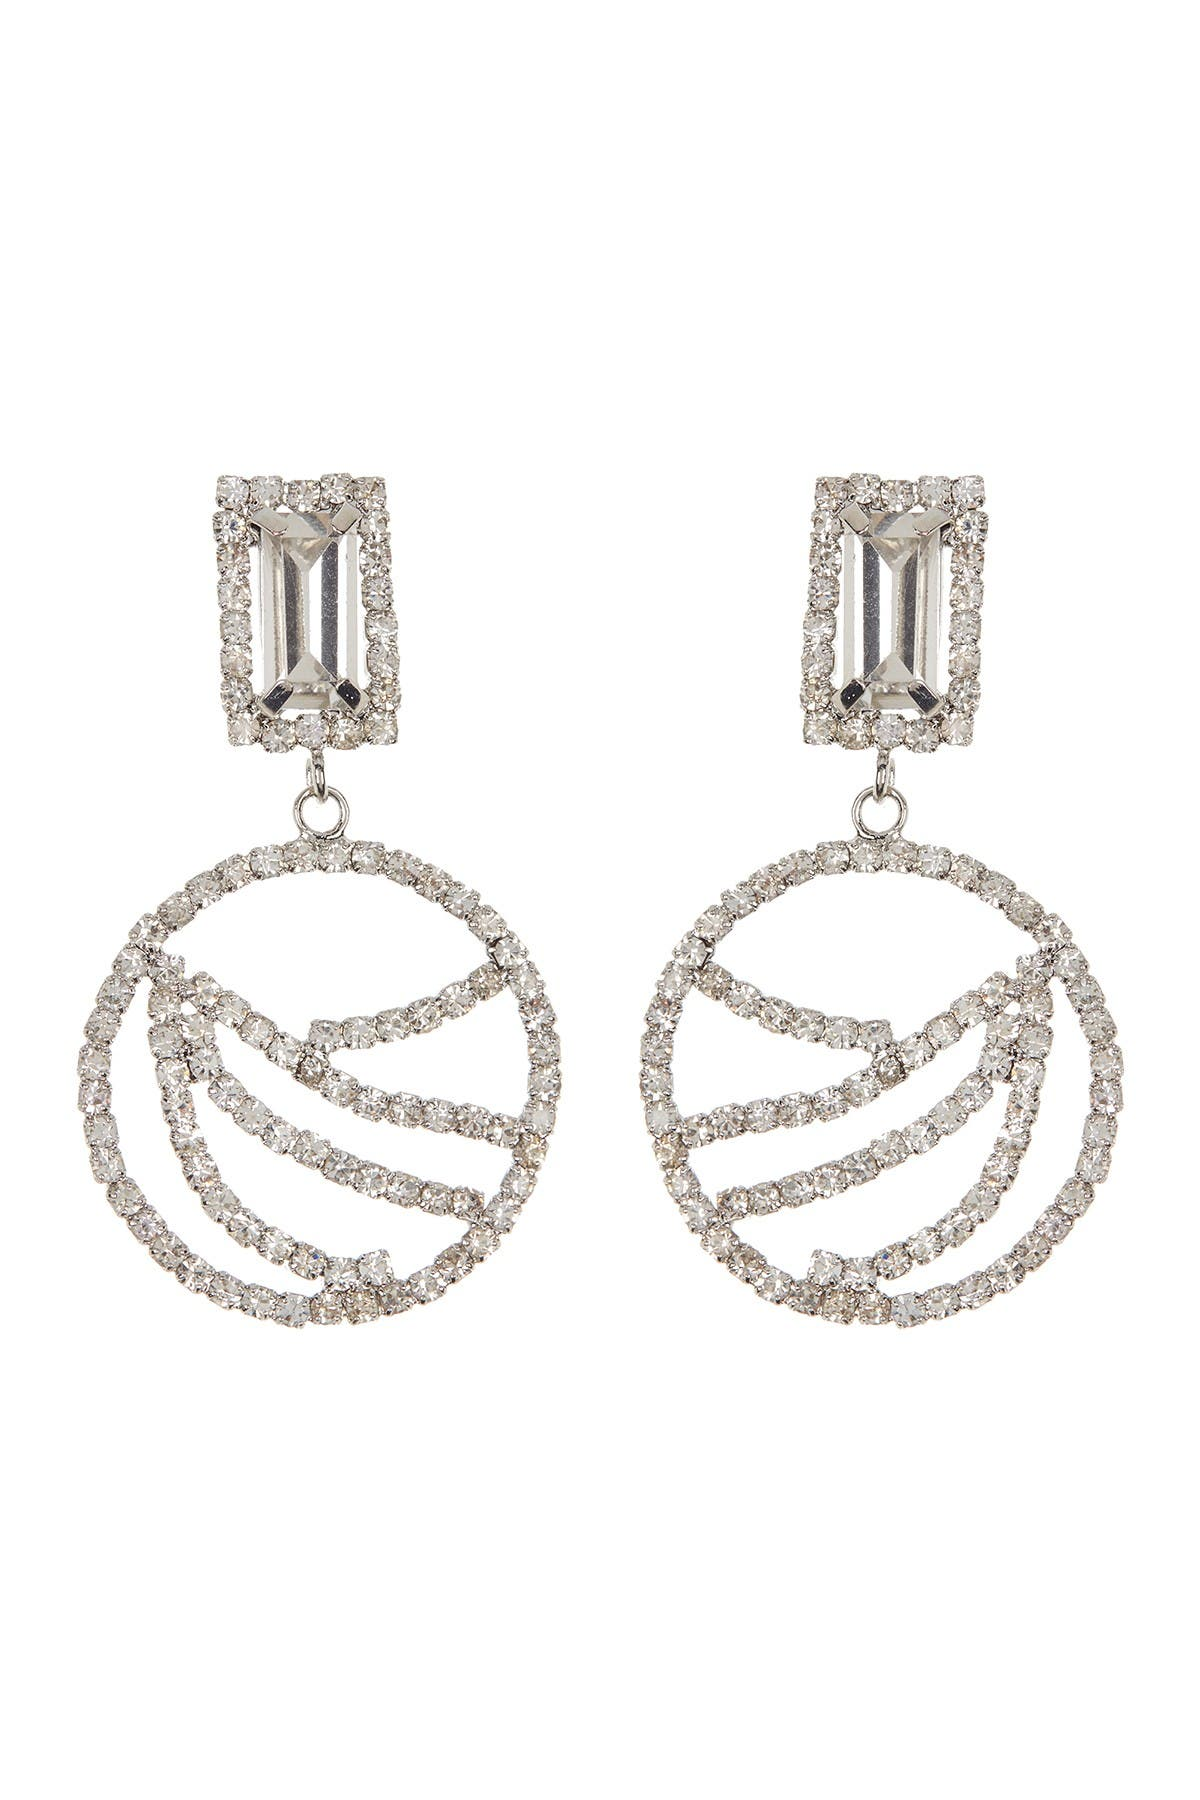 Image of CRISTABELLE Pave Crystal Open Circle Drop Earrings